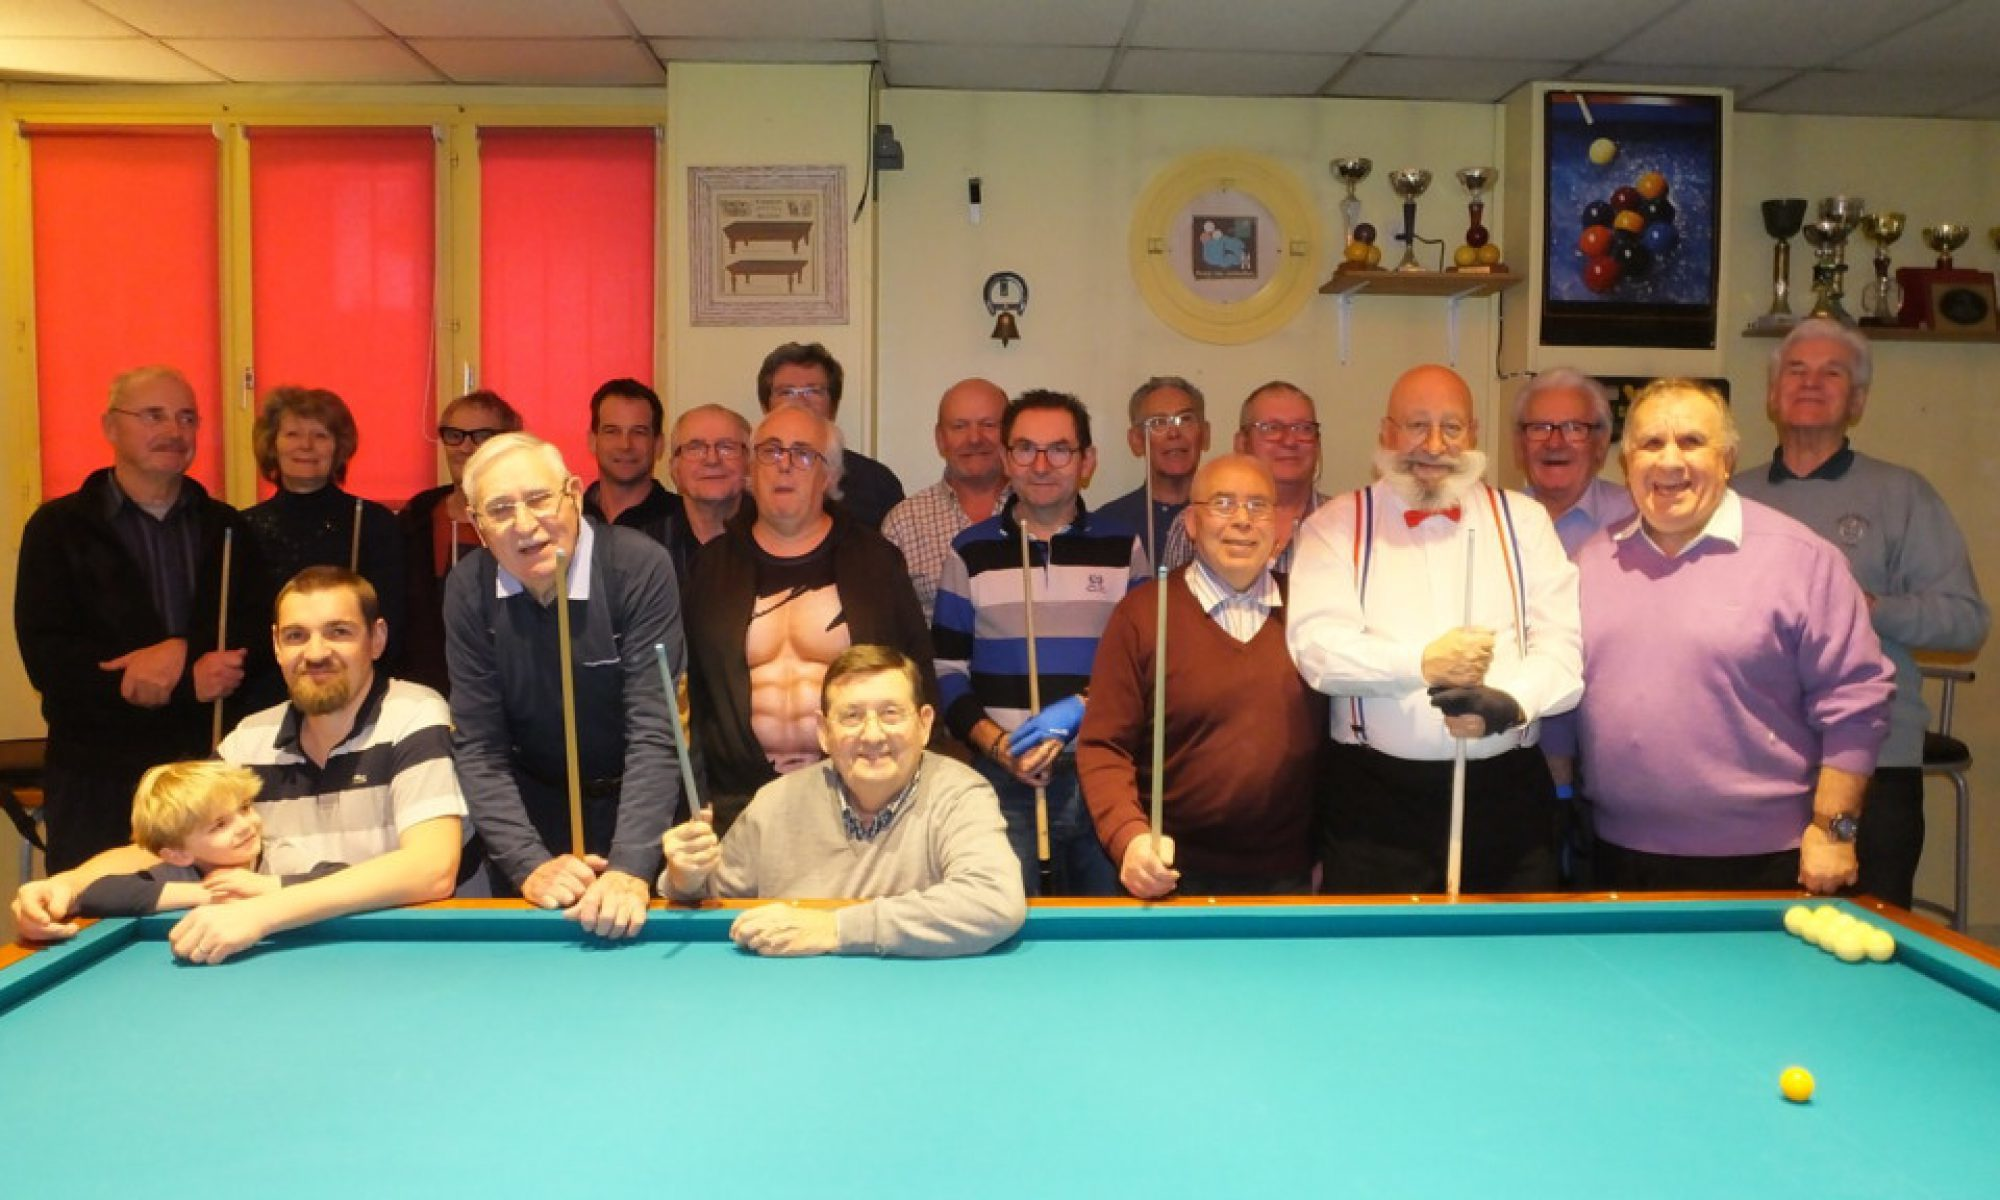 Billard Club Sottevillais